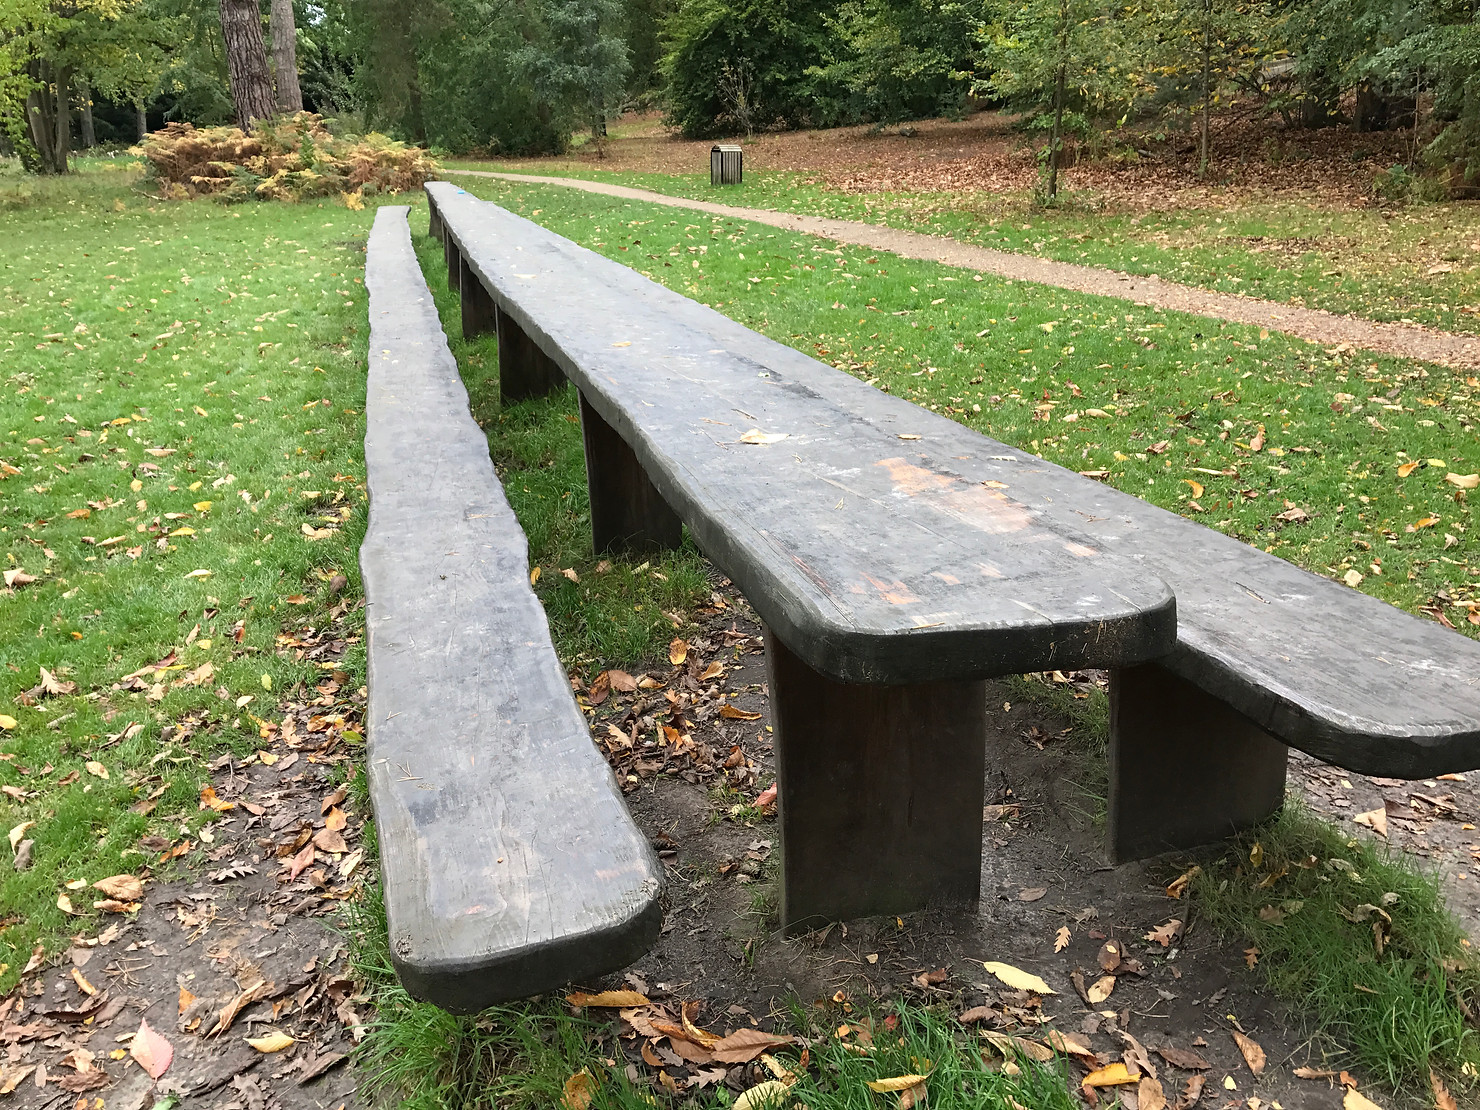 England's longest picnic bench (carved from a single piece of wood)